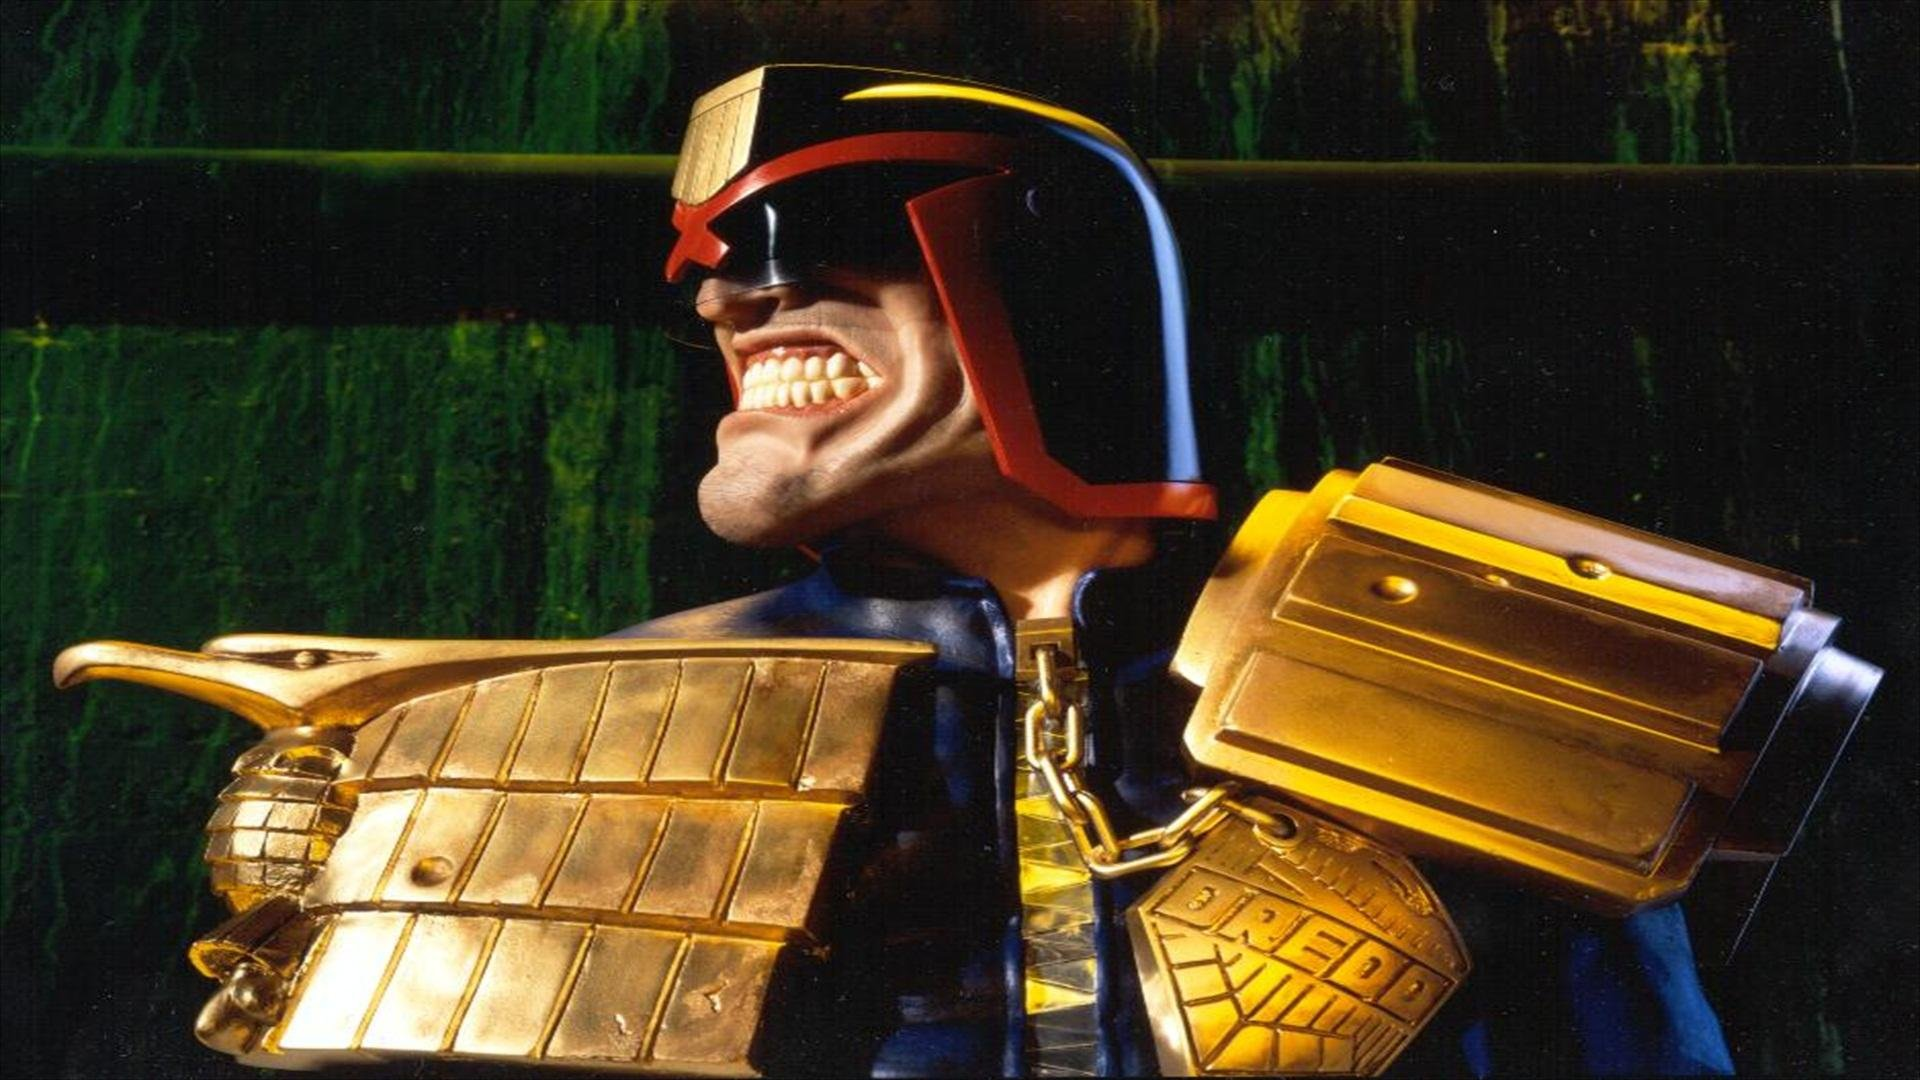 Pictures Of Nuts And Bolts >> Judge dredd wallpaper | 1920x1080 | 272564 | WallpaperUP